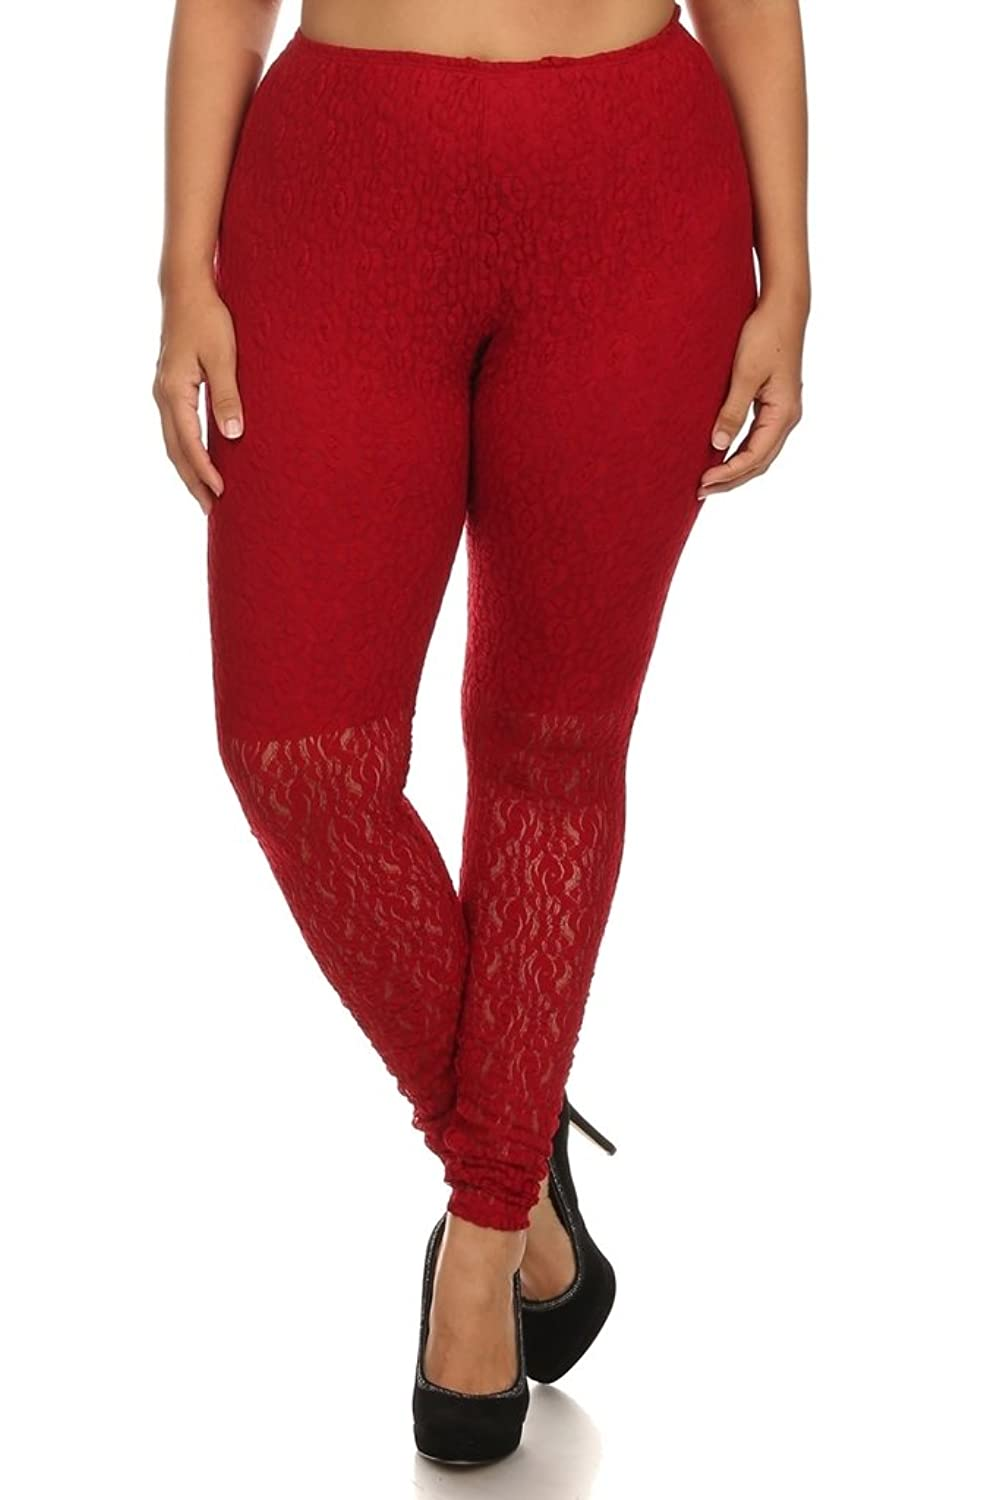 CANARI- New Collection Women's Plus Size Red Legging pants